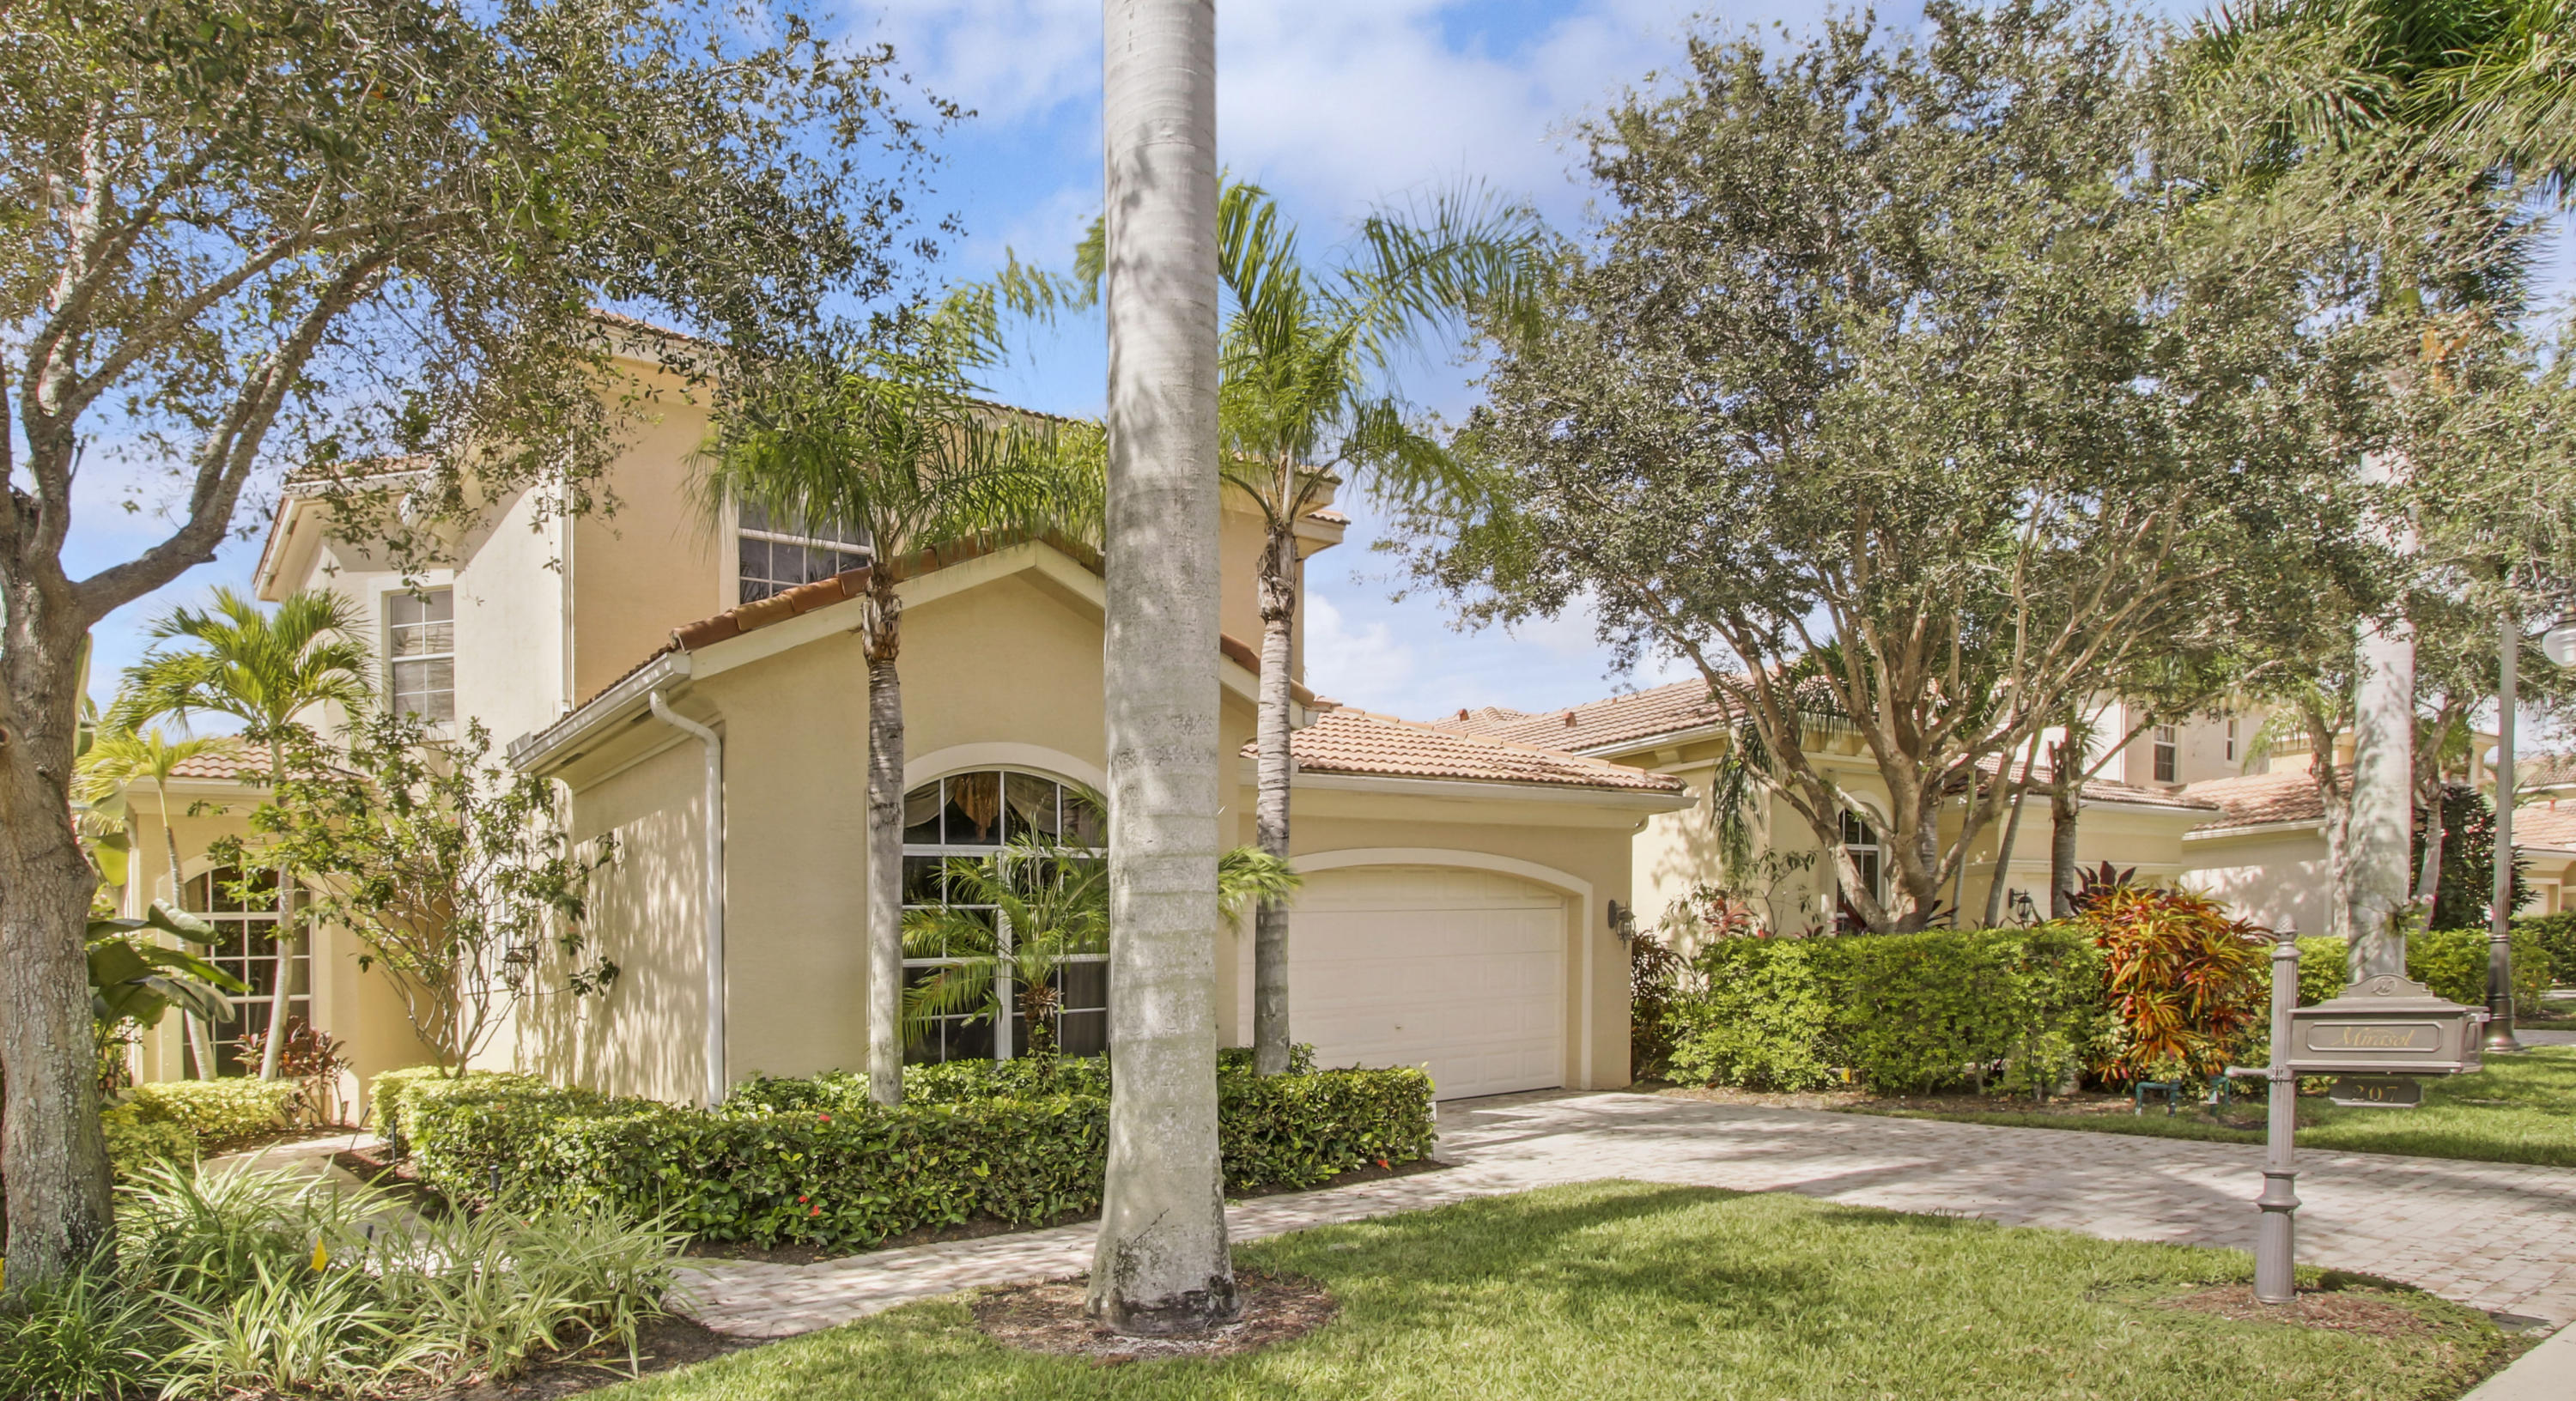 207 Andalusia Drive, Palm Beach Gardens, Florida 33418, 4 Bedrooms Bedrooms, ,3 BathroomsBathrooms,F,Single family,Andalusia,RX-10701135